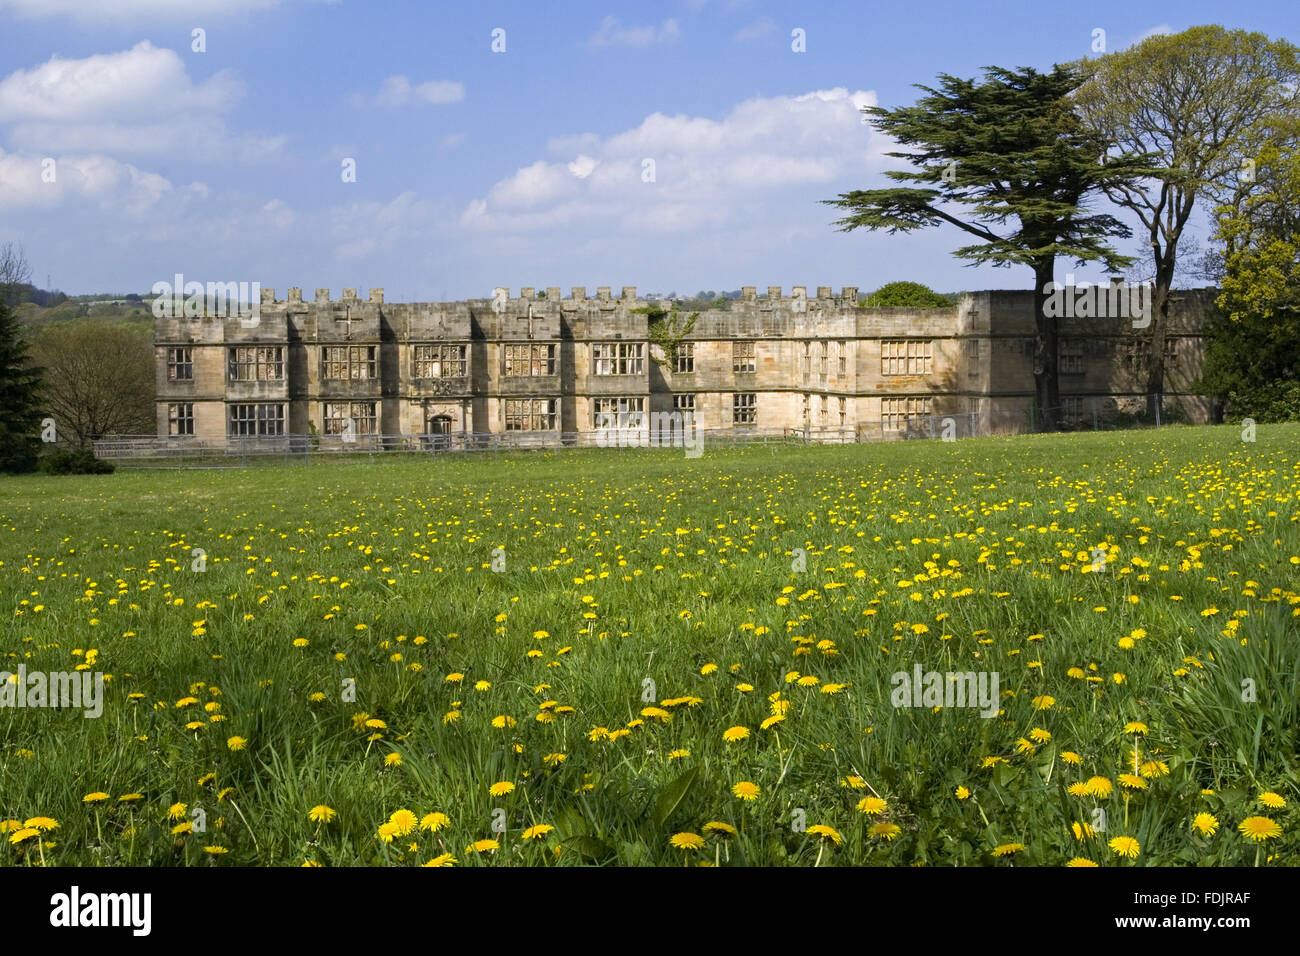 View across a wildflower meadow towards the Hall built between 1603 and 1620, with alterations in both the 18th and 19th centuries, at Gibside, Newcastle upon Tyne. George Bowes inherited the estate in 1722 and landscaped the grounds around Gibside Hall. Stock Photo